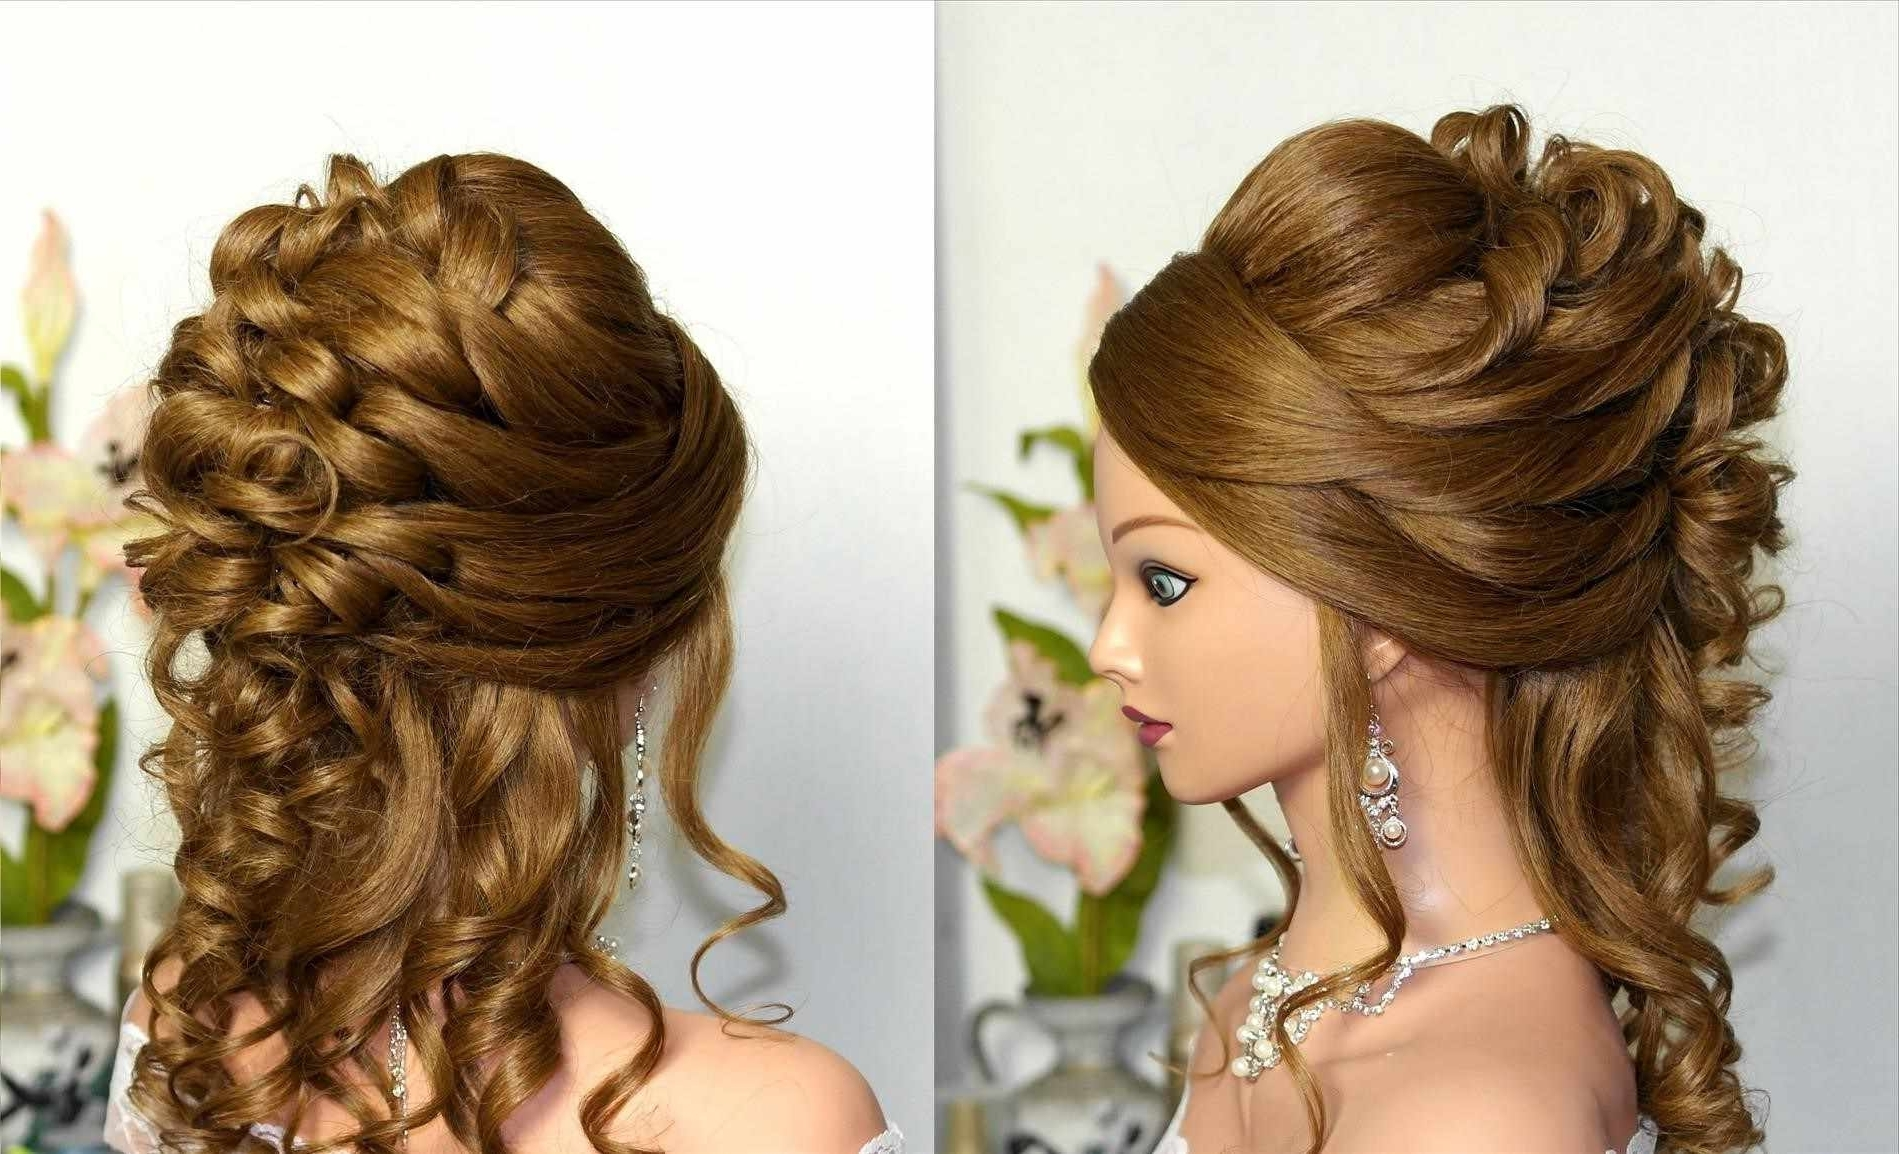 Best Wedding Hairstyles For Long Thick Hair Impressive Updos Prom Intended For Braid Updo Hairstyles For Long Hair (View 3 of 15)